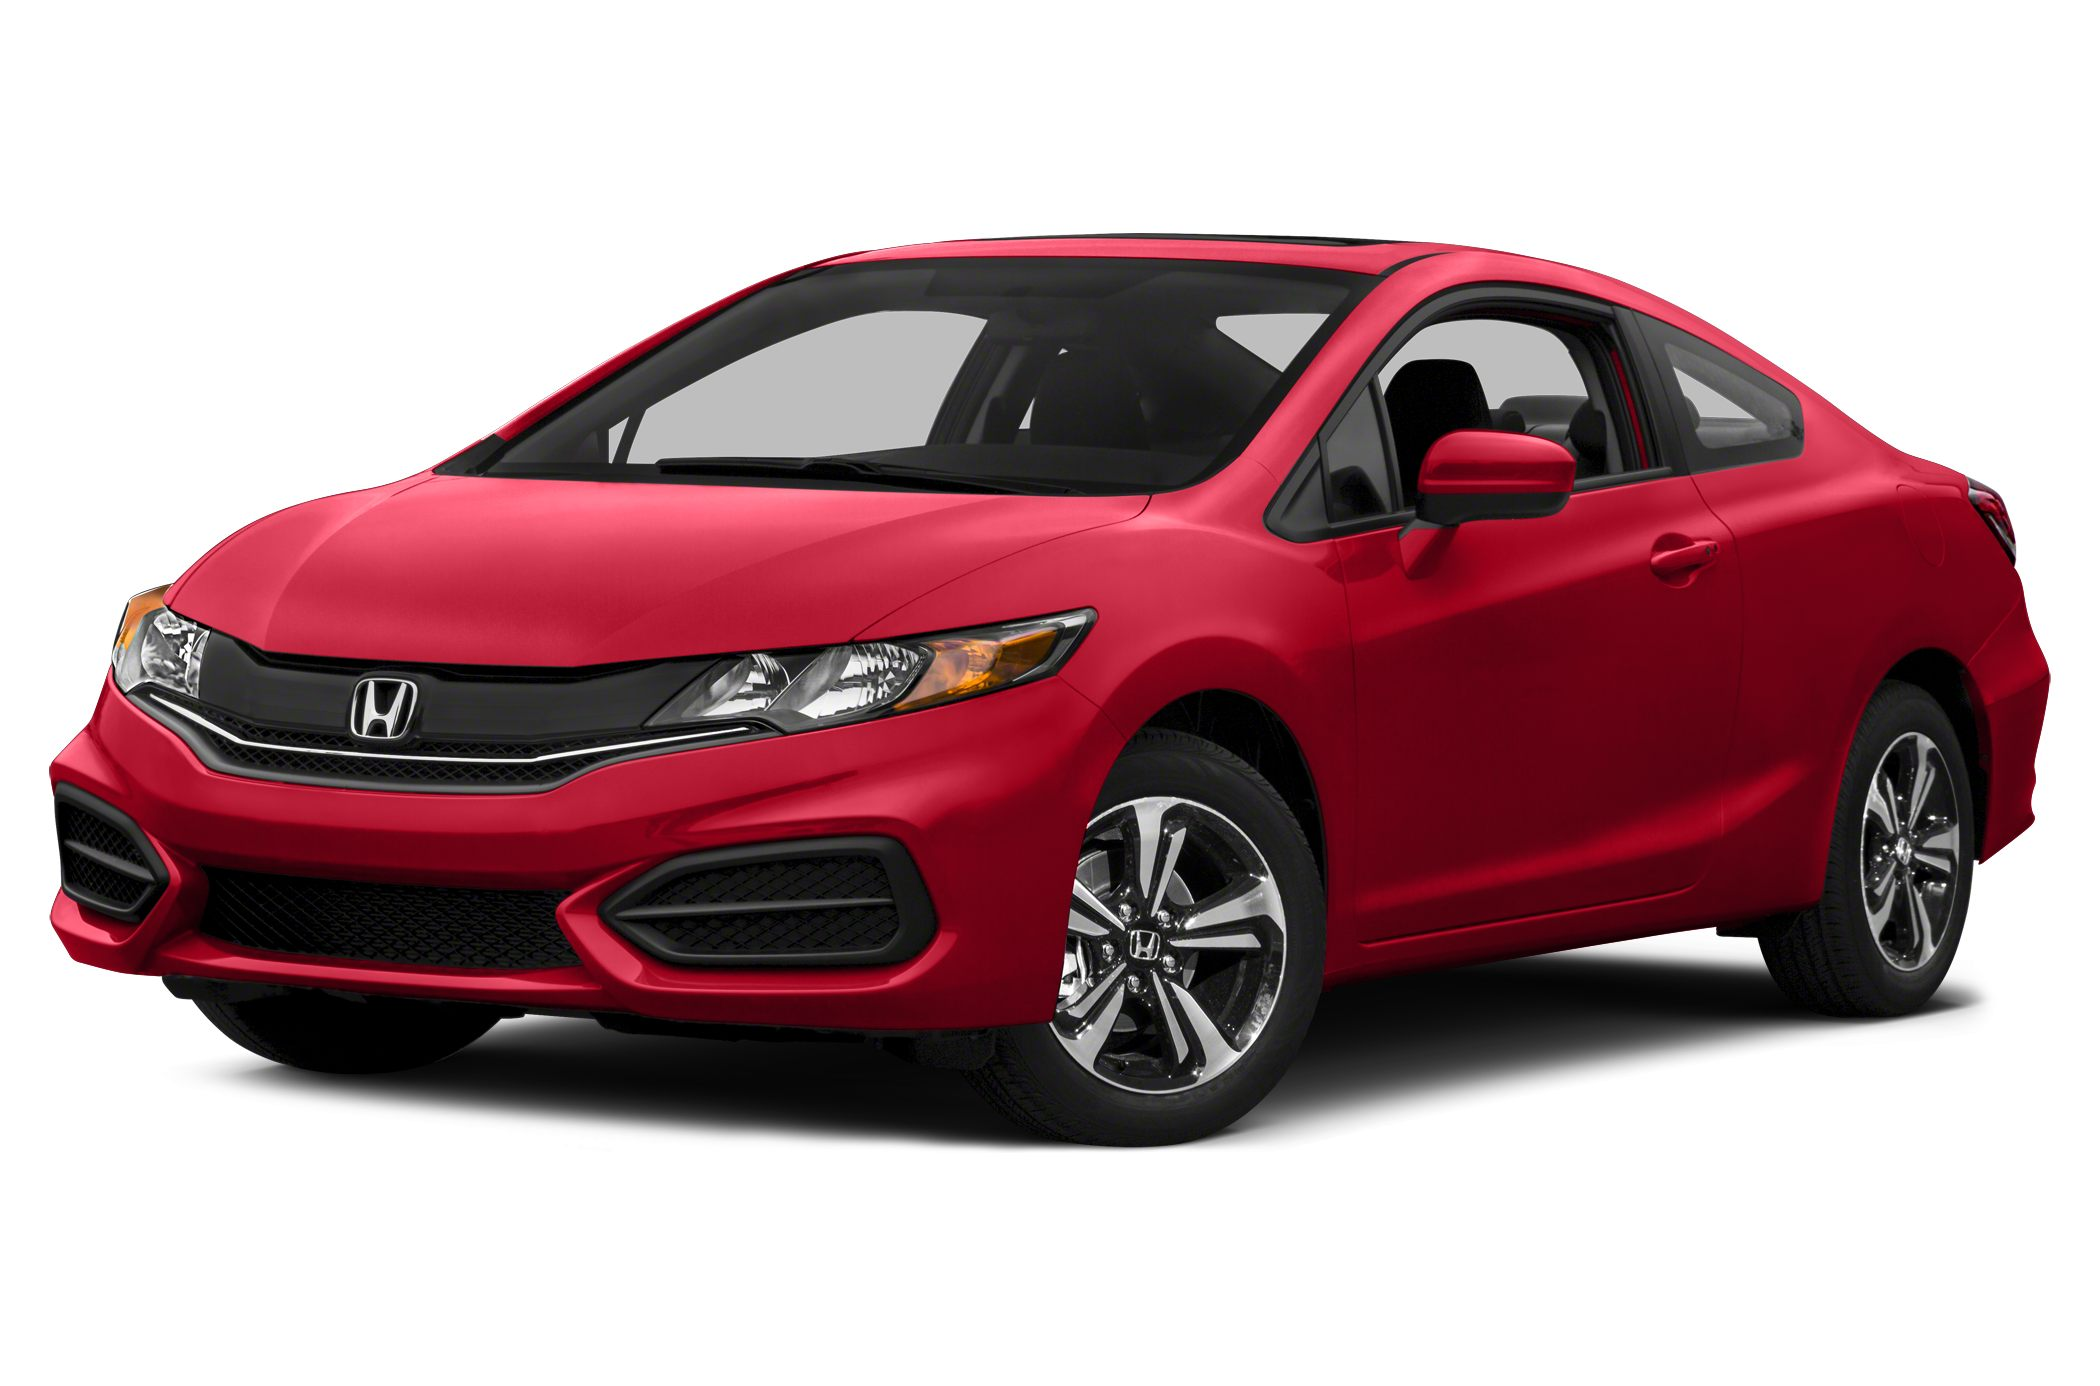 2015 Honda Civic EX Sedan for sale in Indianapolis for $21,980 with 10 miles